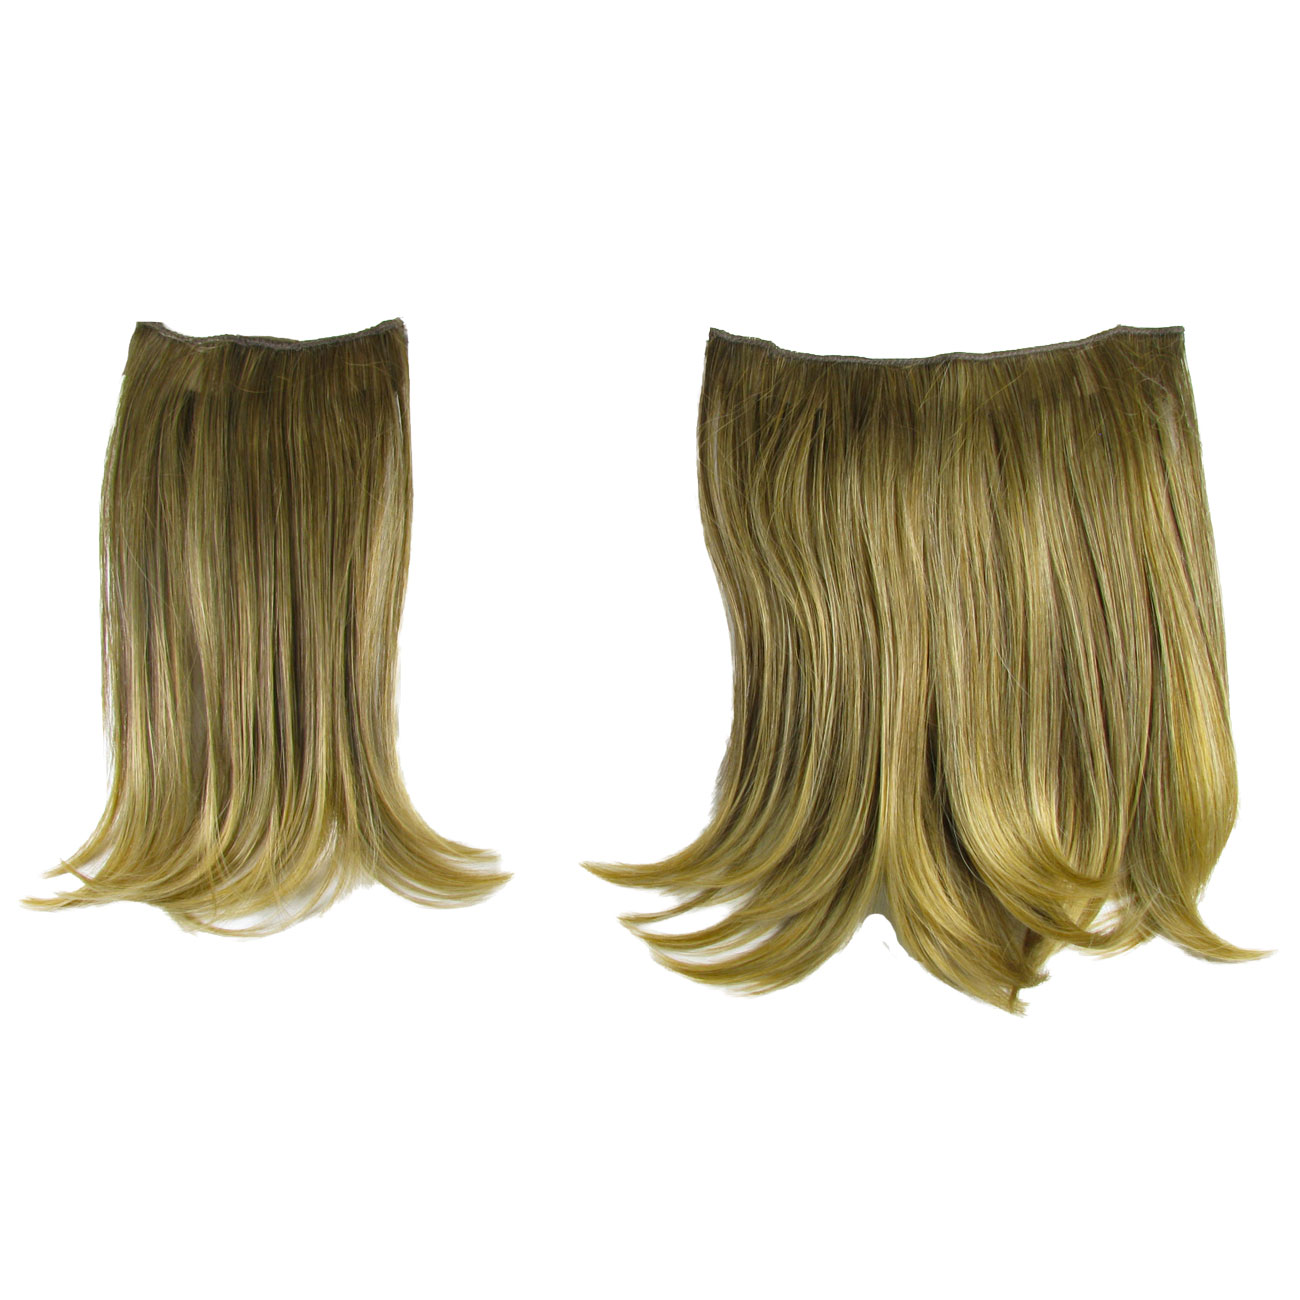 Hair Extensions Clip In 2 Piece Ken Paves Hairdo Dark Blonde Fashion